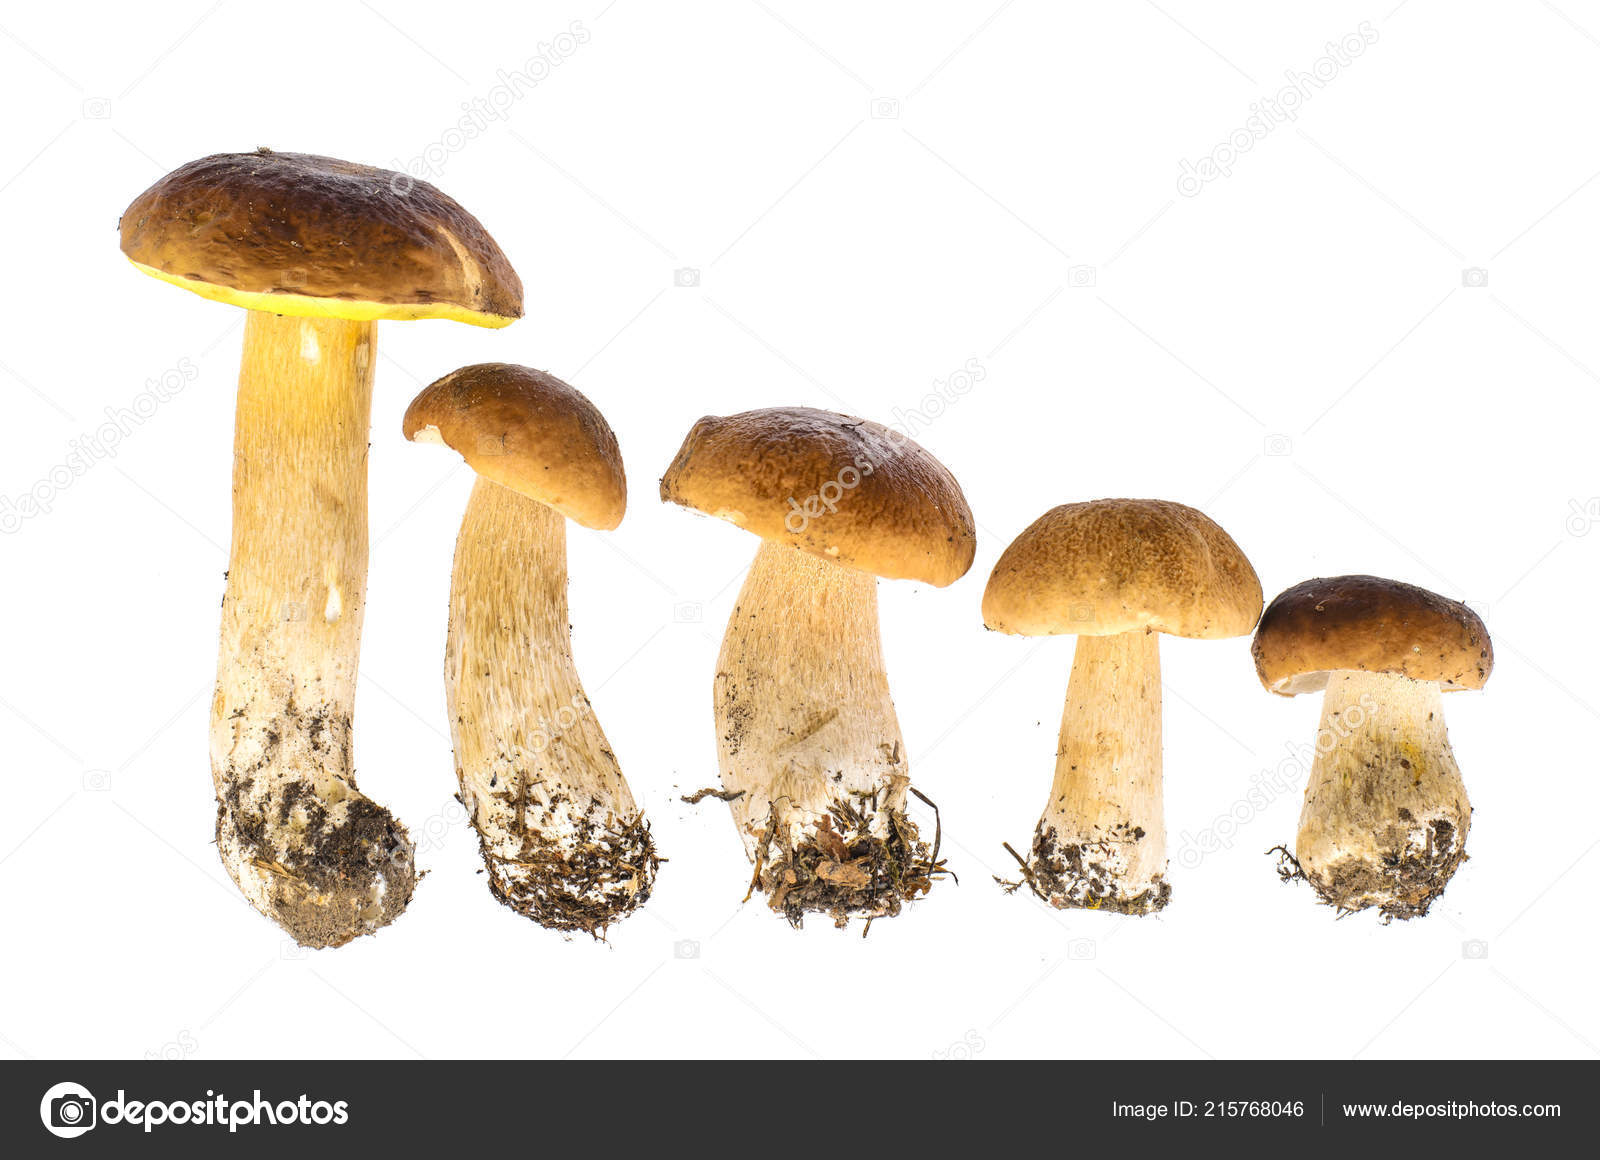 8x12 FT Mushroom Vinyl Photography Backdrop,Colorful Fungi Pattern BER Boletus Sketch Style Plants Autumn Illustration Background for Party Home Decor Outdoorsy Theme Shoot Props